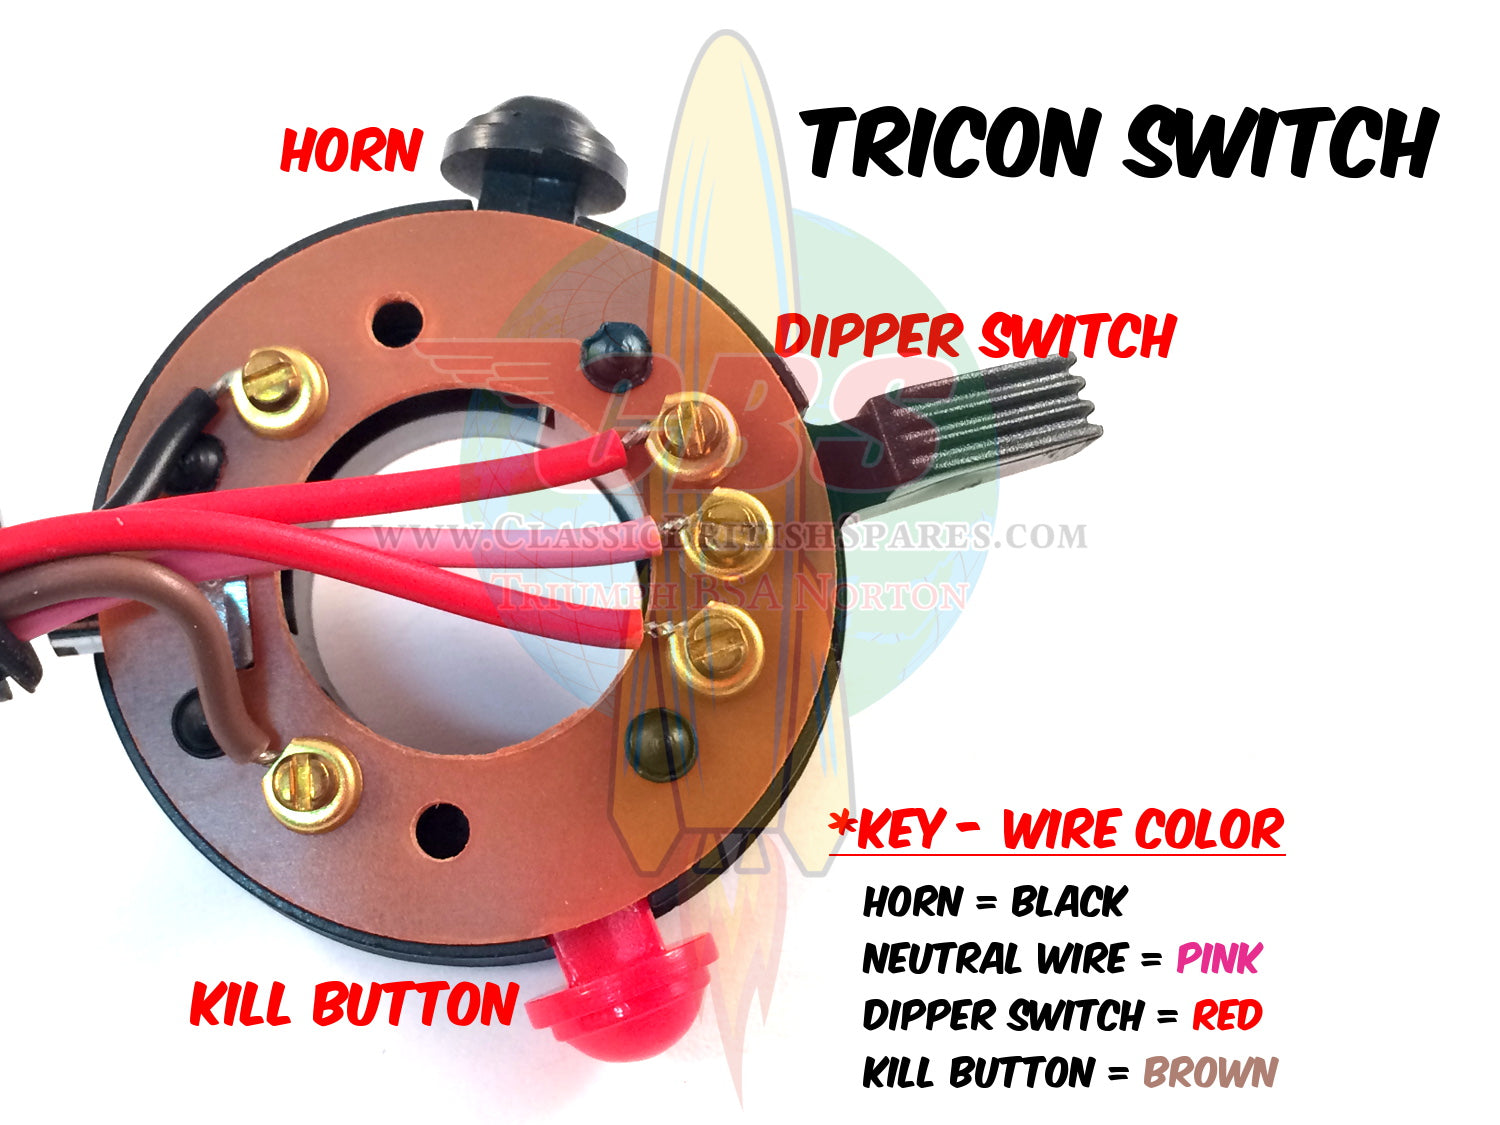 Technical Files Triumph Wiring Diagram Boyer Wipac Tricon Switch